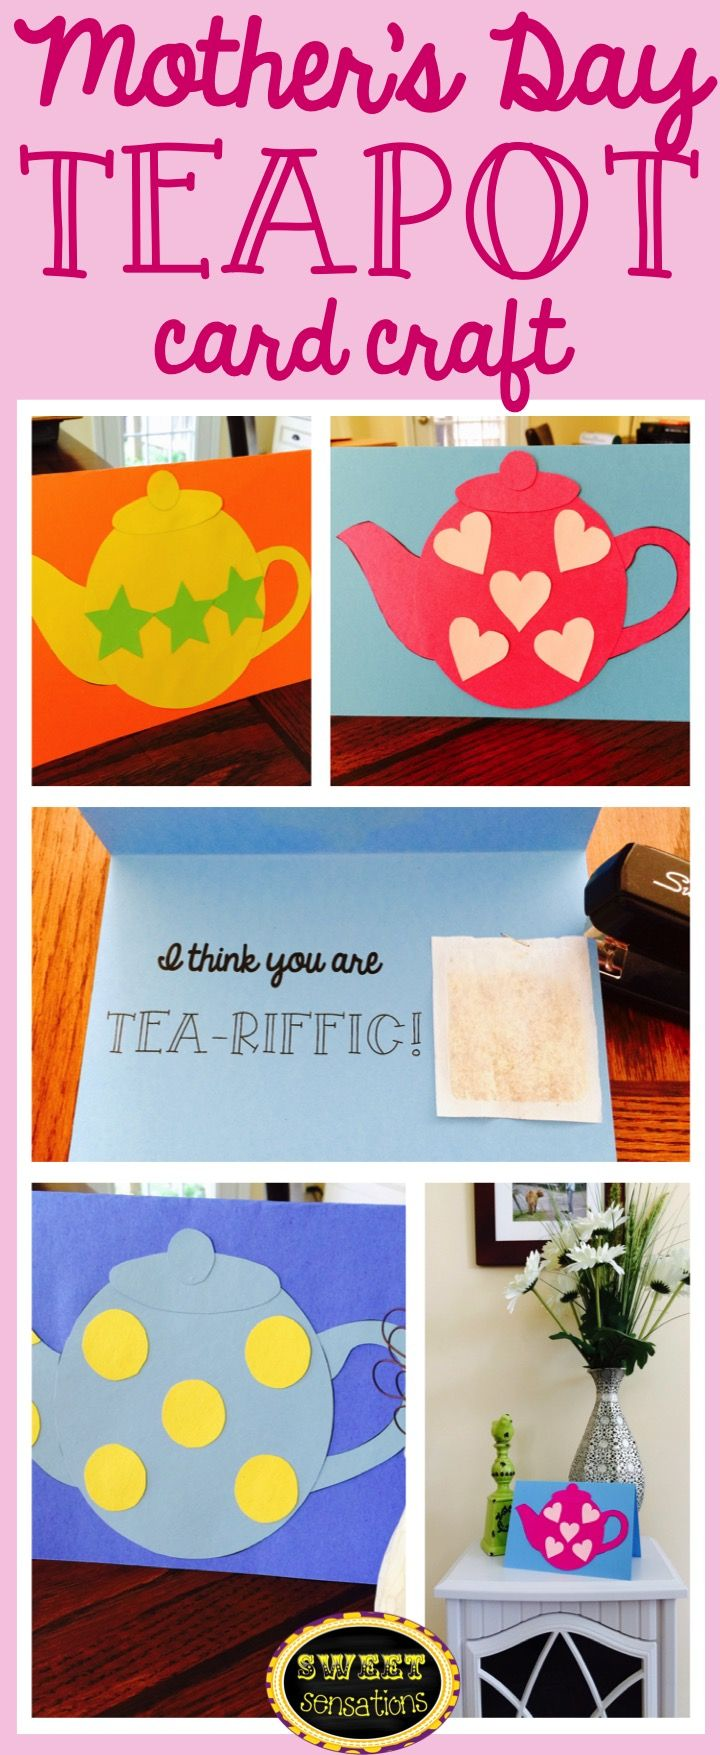 "Mother's Day card activity - kids make a card with a teapot on the front, inside says ""I think you are TEA-RIFFIC"" and space to attach a teabag.  Cute!  $4.00"